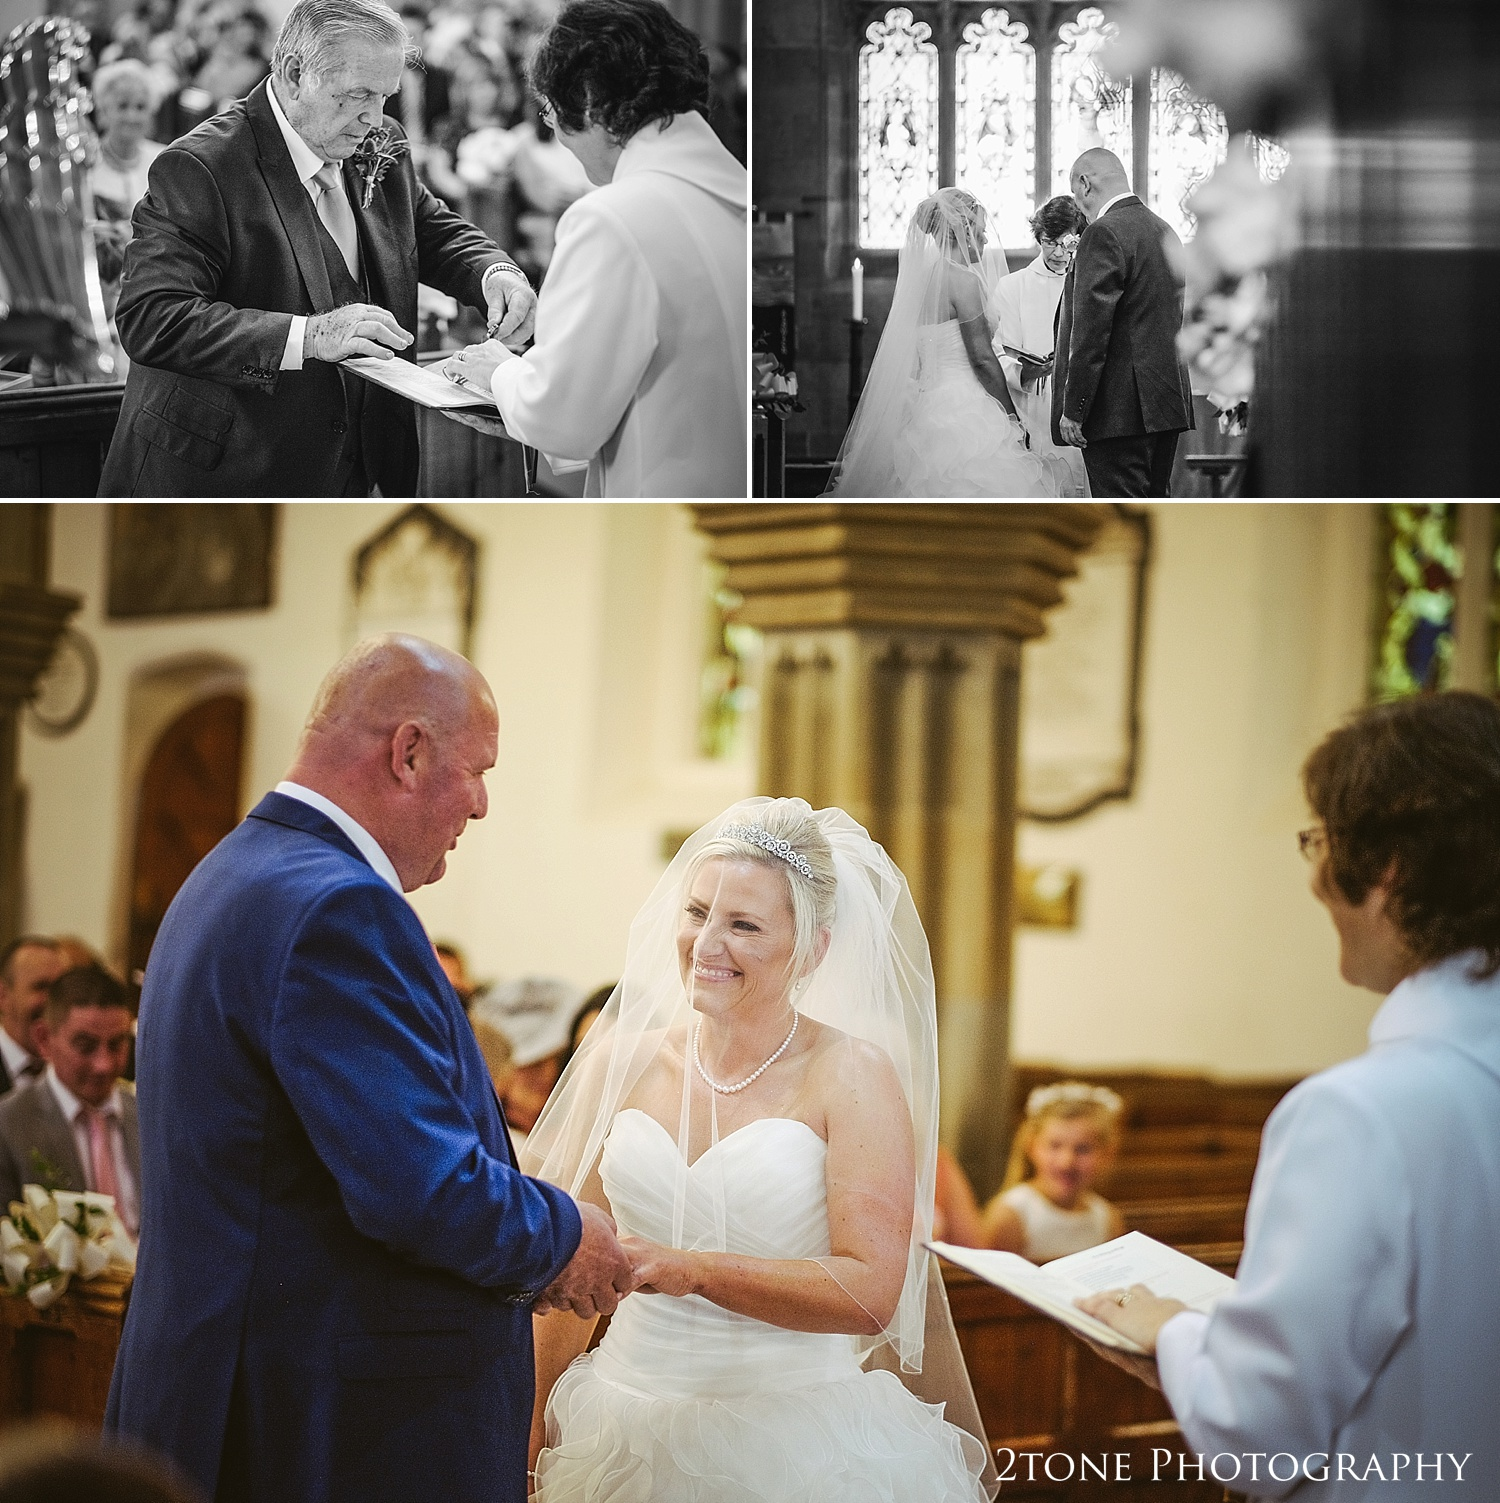 Wedding vows in St Michael's in Alnwick by Newcastle and Durham based wedding photographers www.2tonephotography.co.uk